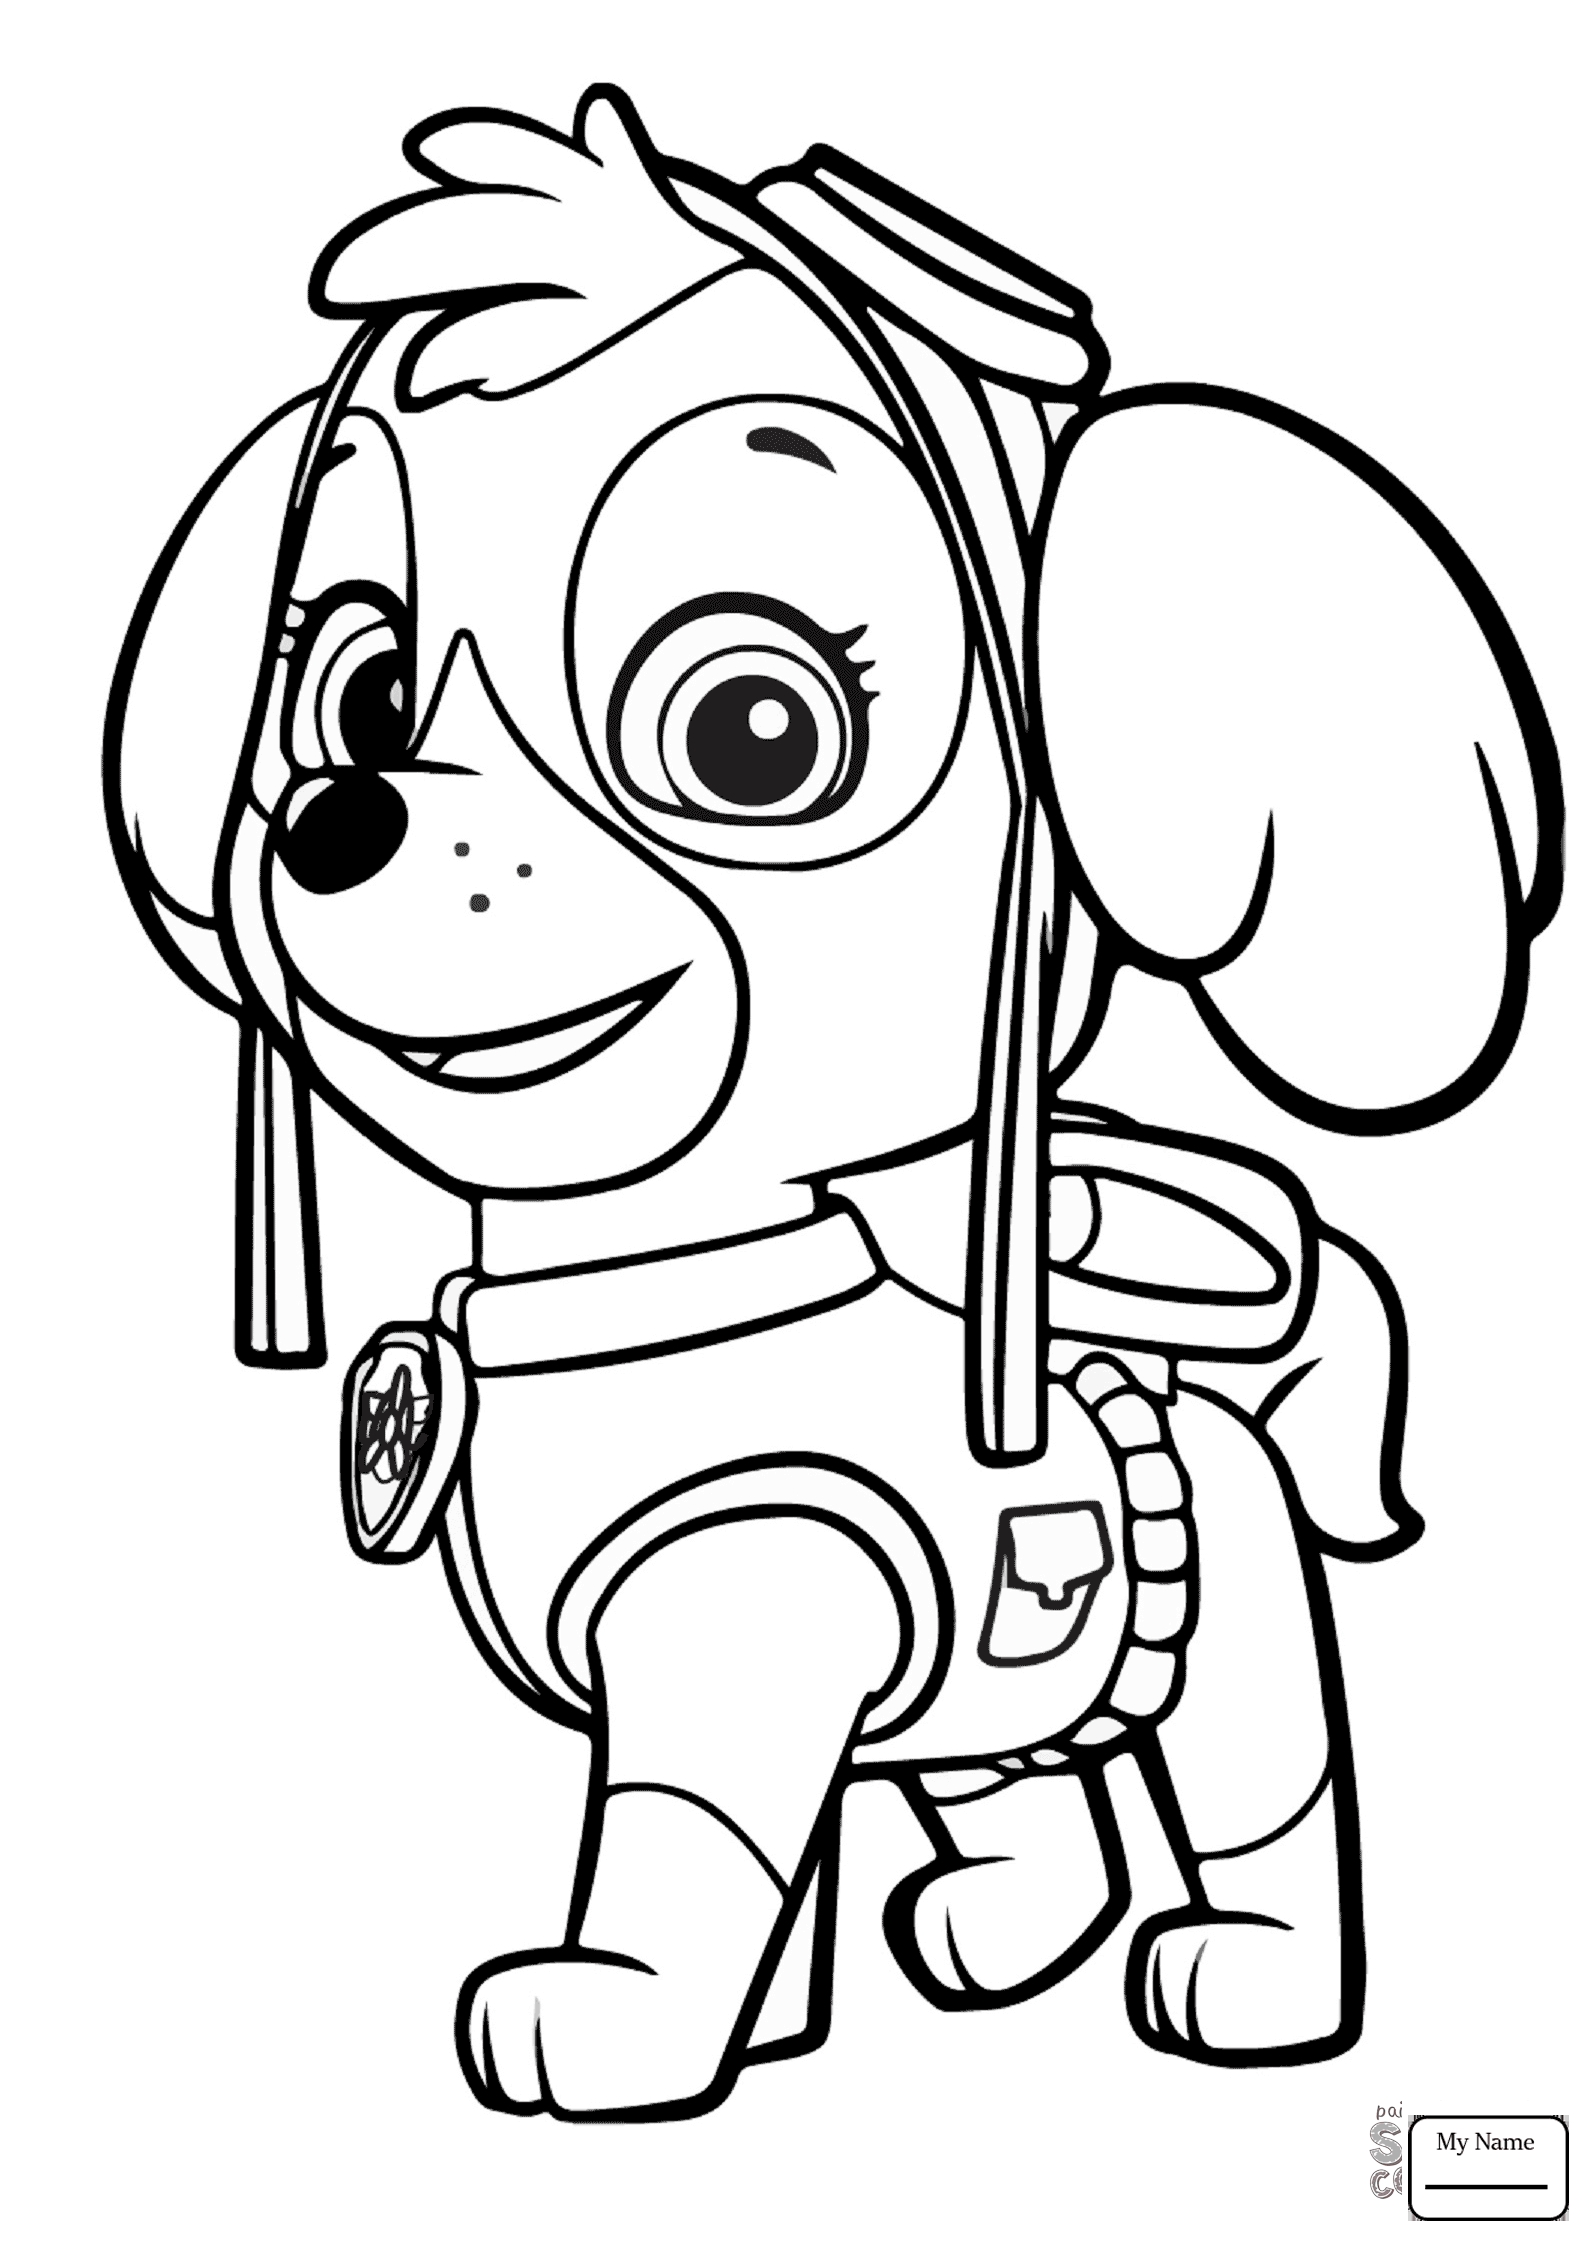 everest coloring page paw patrol everest coloring sheet paw patrol coloring everest page coloring